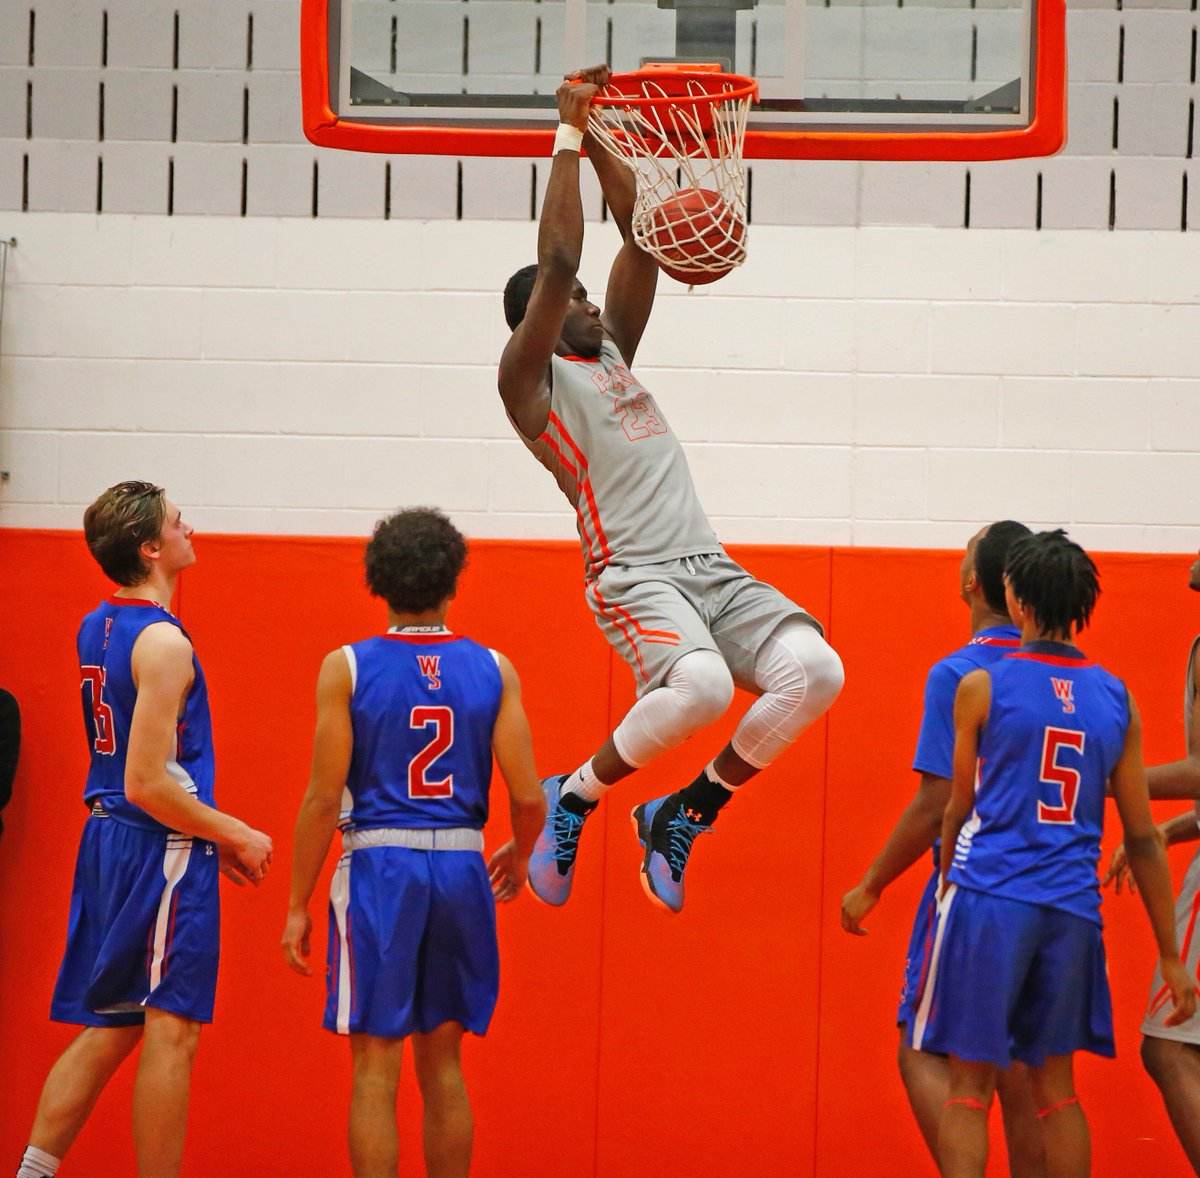 Joe Jones throws down two points for Park during its comeback win over Williamsville South on Thursday. (Harry Scull Jr./Buffalo News)